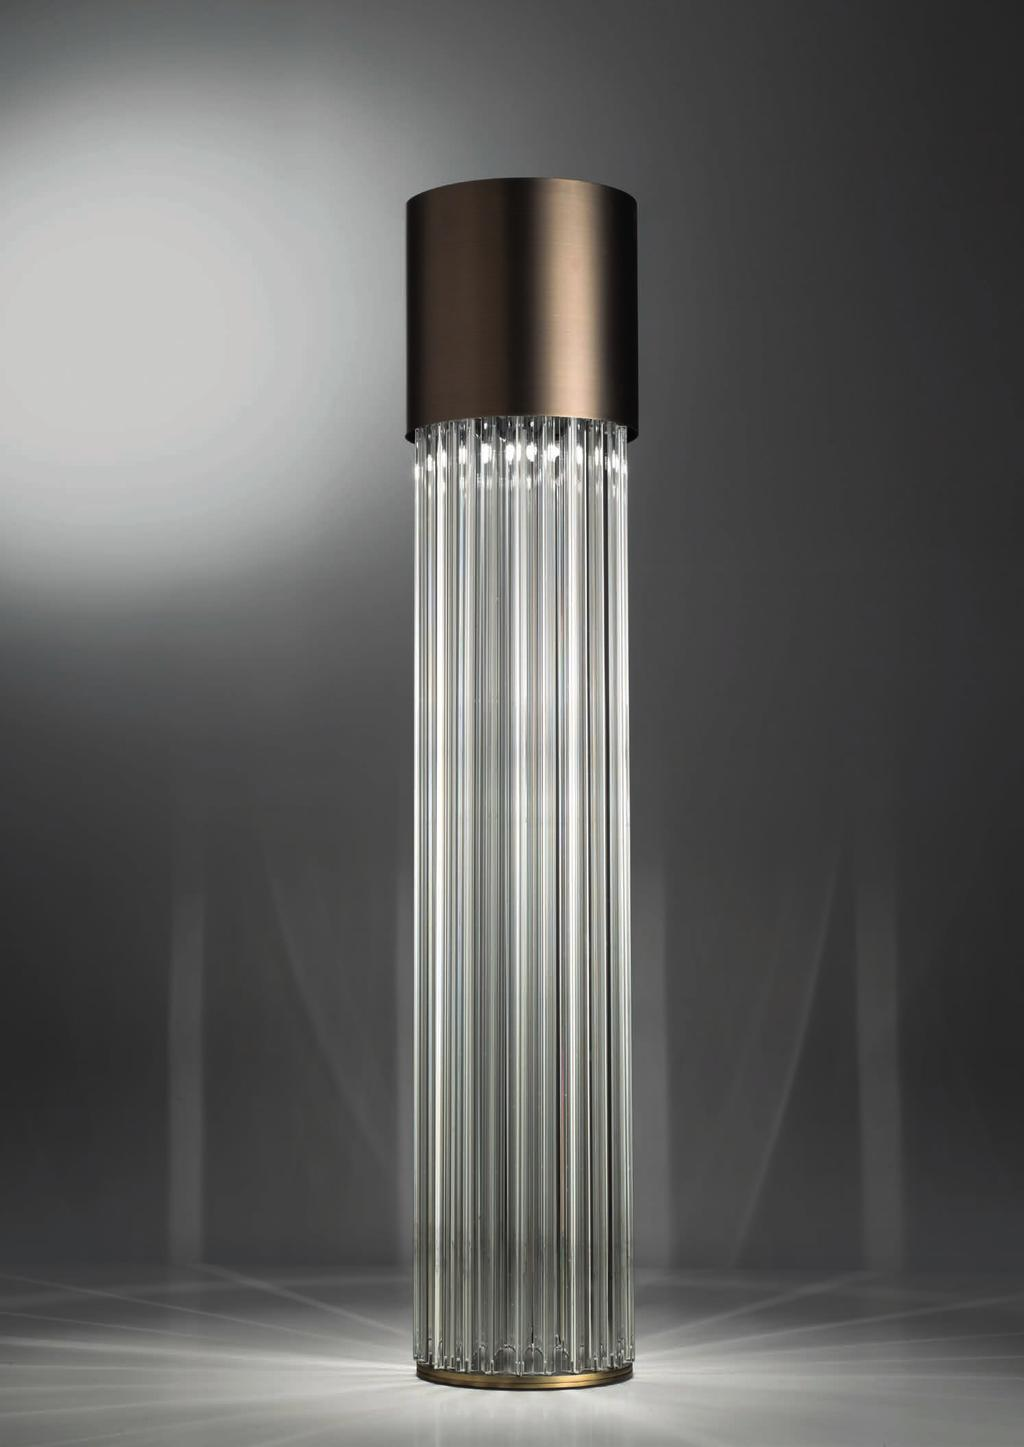 CHIC FLOOR 130cm-51 Ø 29cm-11 Floor lamp with diffuse light. Dark bronze striped structure with crystal, amber or smoke trihedrons.